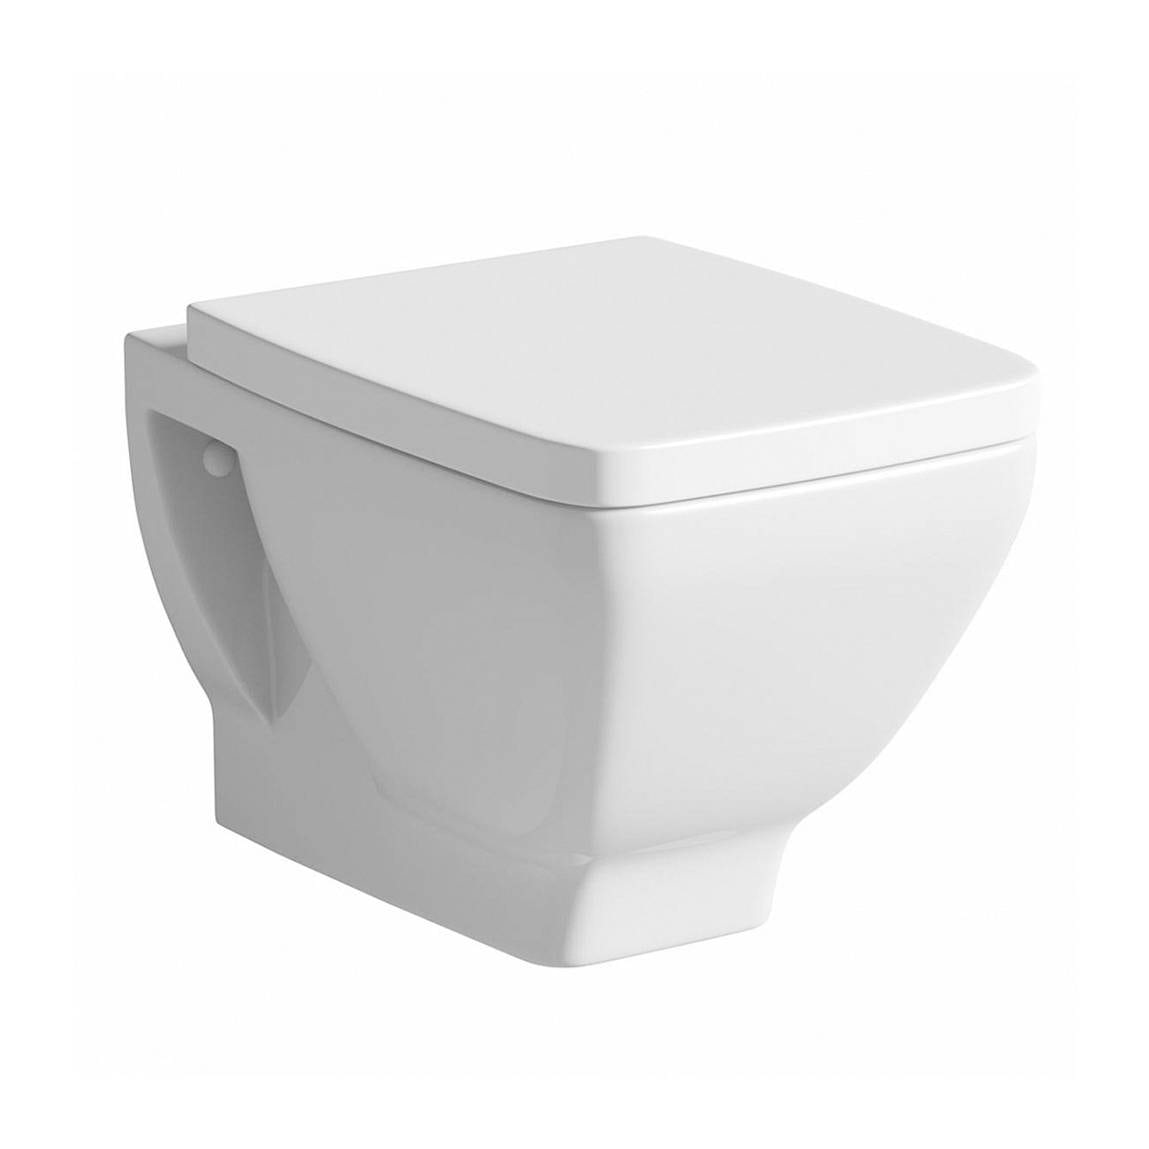 Mode Cooper wall hung toilet with soft close seat